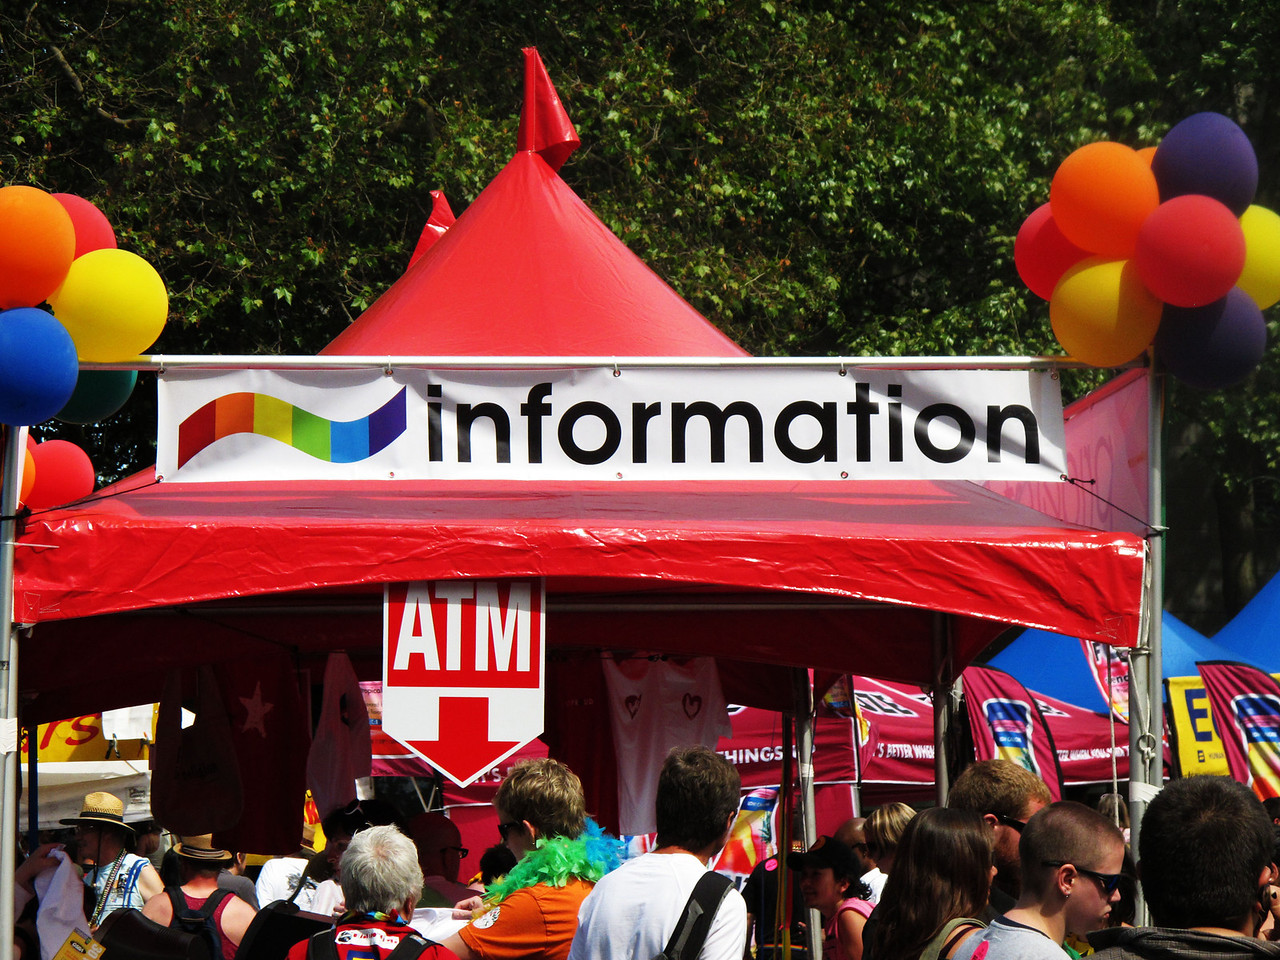 I love that there was a place for gay information.